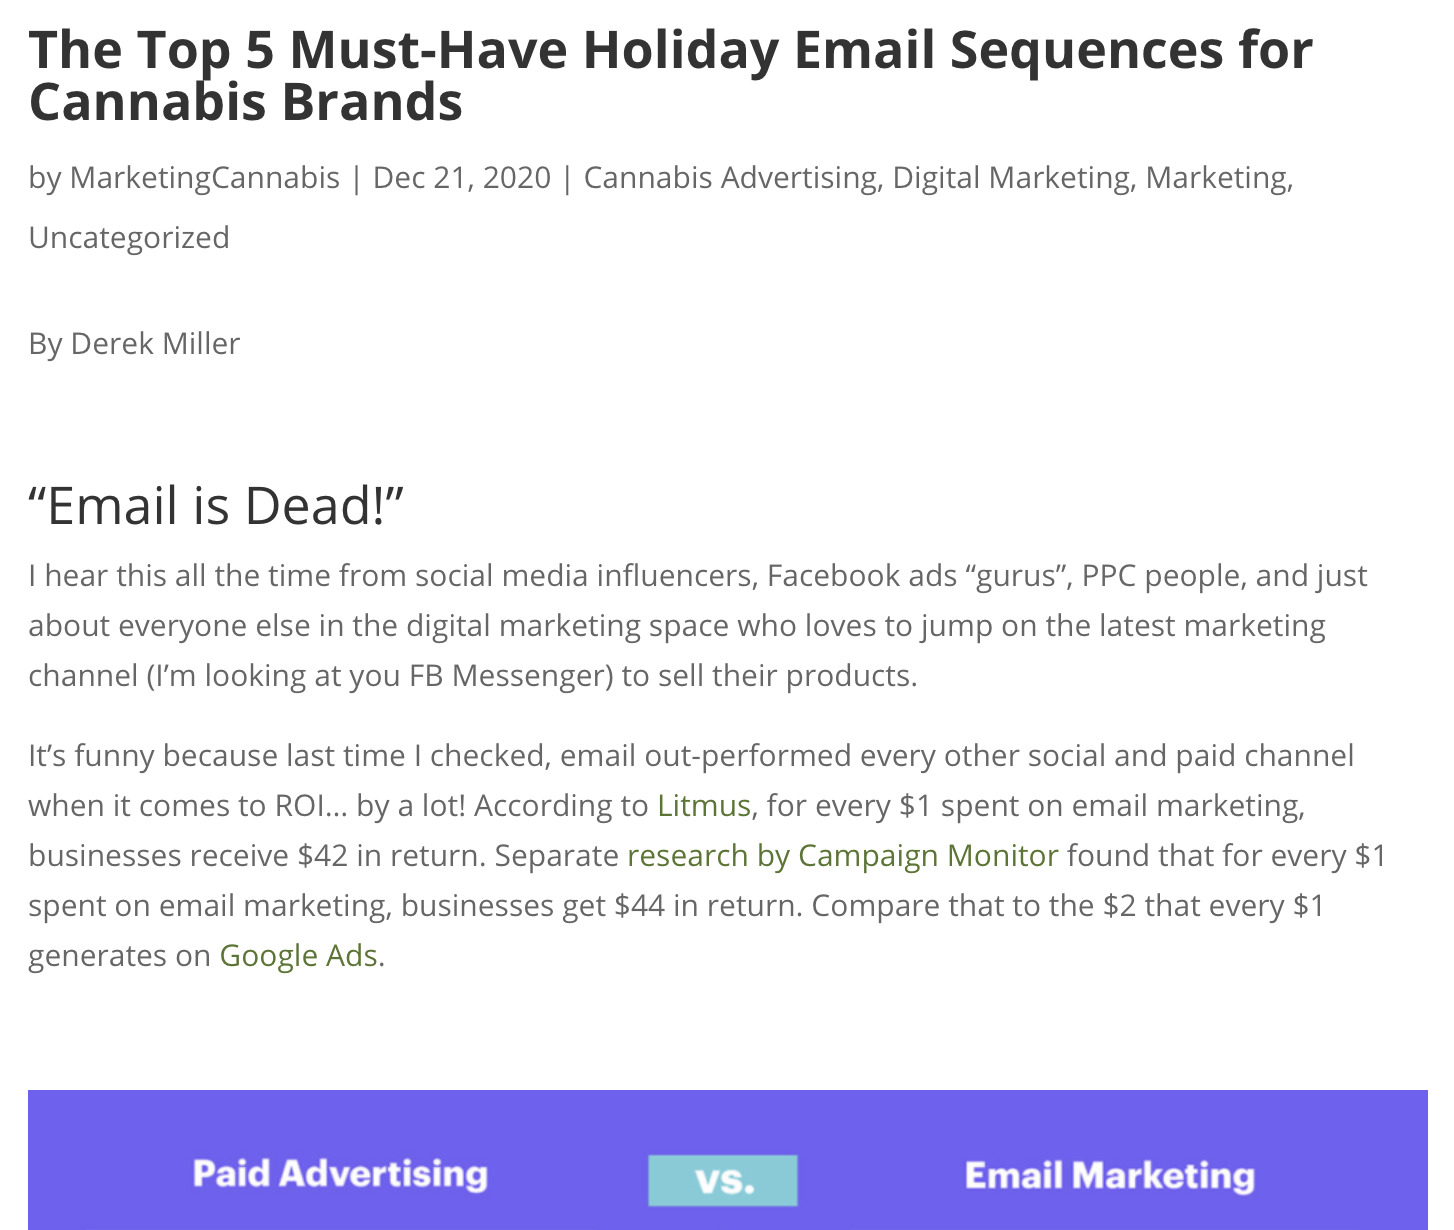 The Top 5 Must-Have Holiday Email Sequences for Cannabis Brands